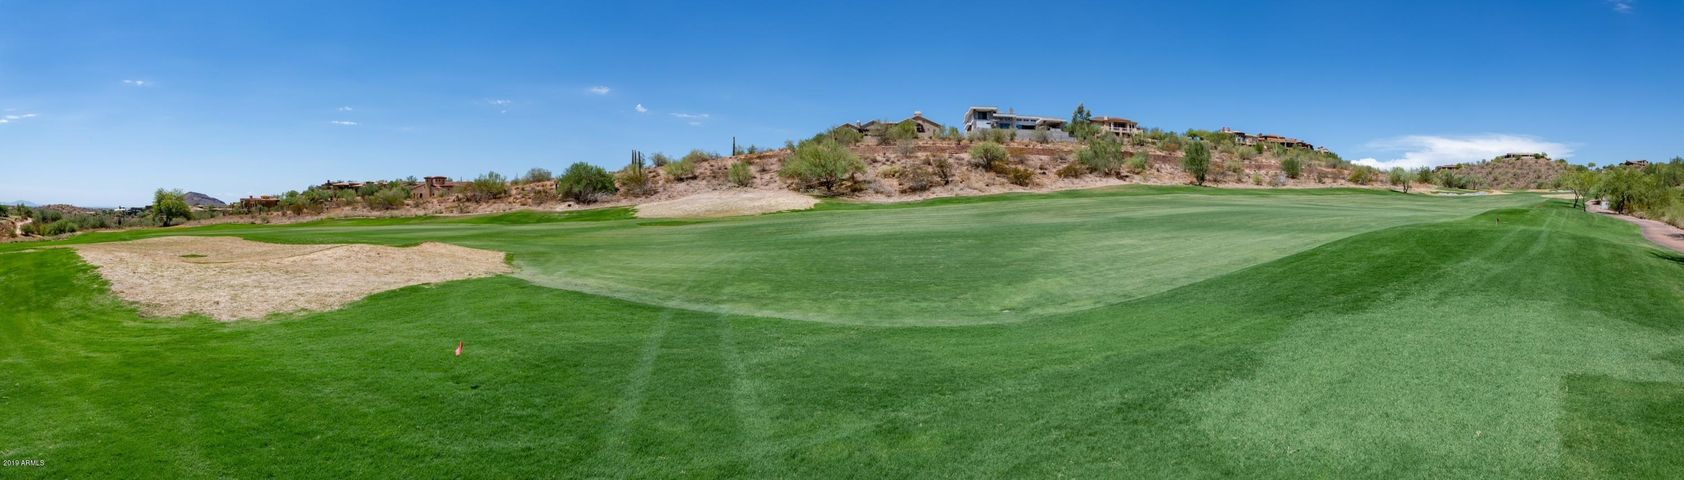 Prime golf course lot in the prestigious, gated Firerock community!  This R-18 zoned lot is just over half an acre and backs up to the golf course, offering fantastic views of the green, mountains, and city lights.  Build your dream home on an ideal lot in a beautifully maintained community.